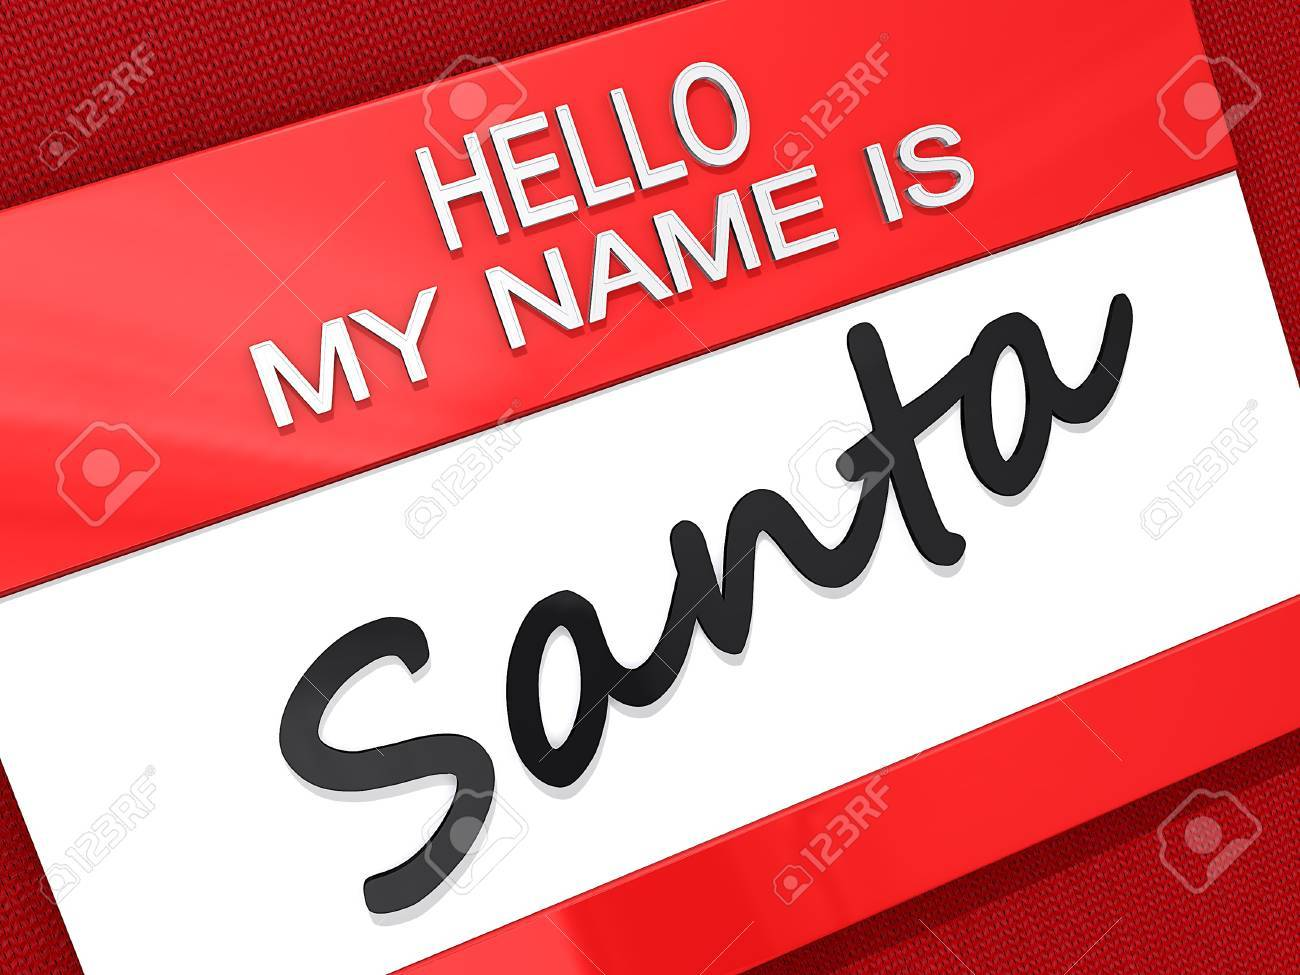 Hello My Name is Santa Sticker on a red shirt background Stock Photo - 15867614